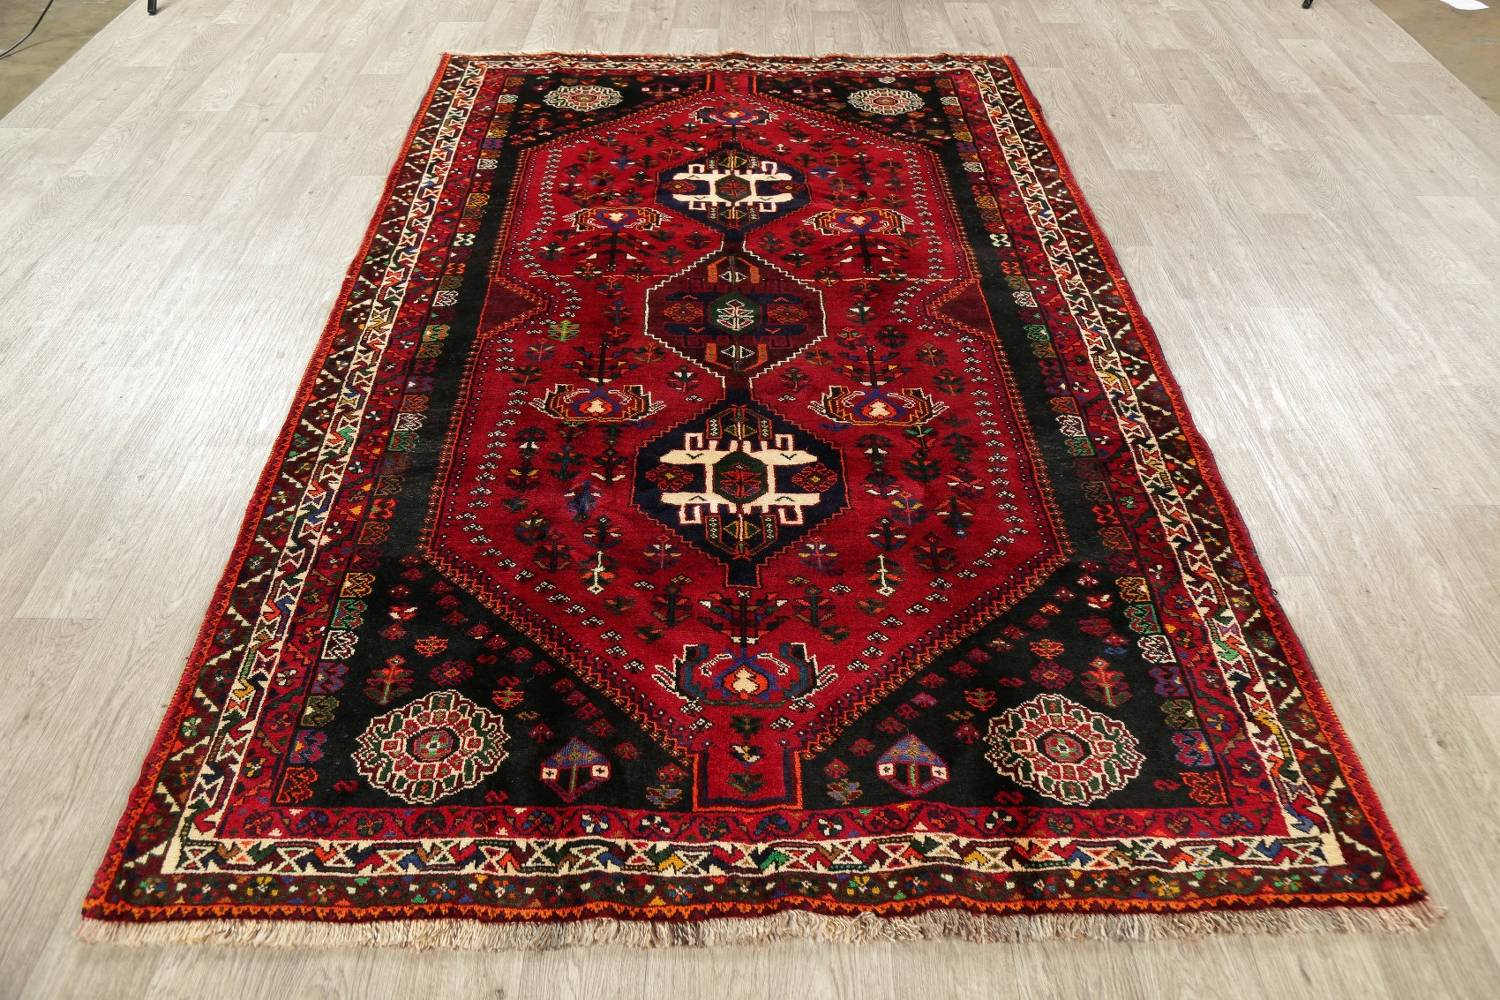 Tribal Abadeh Red Persian Wool Rug 5x8 image 14